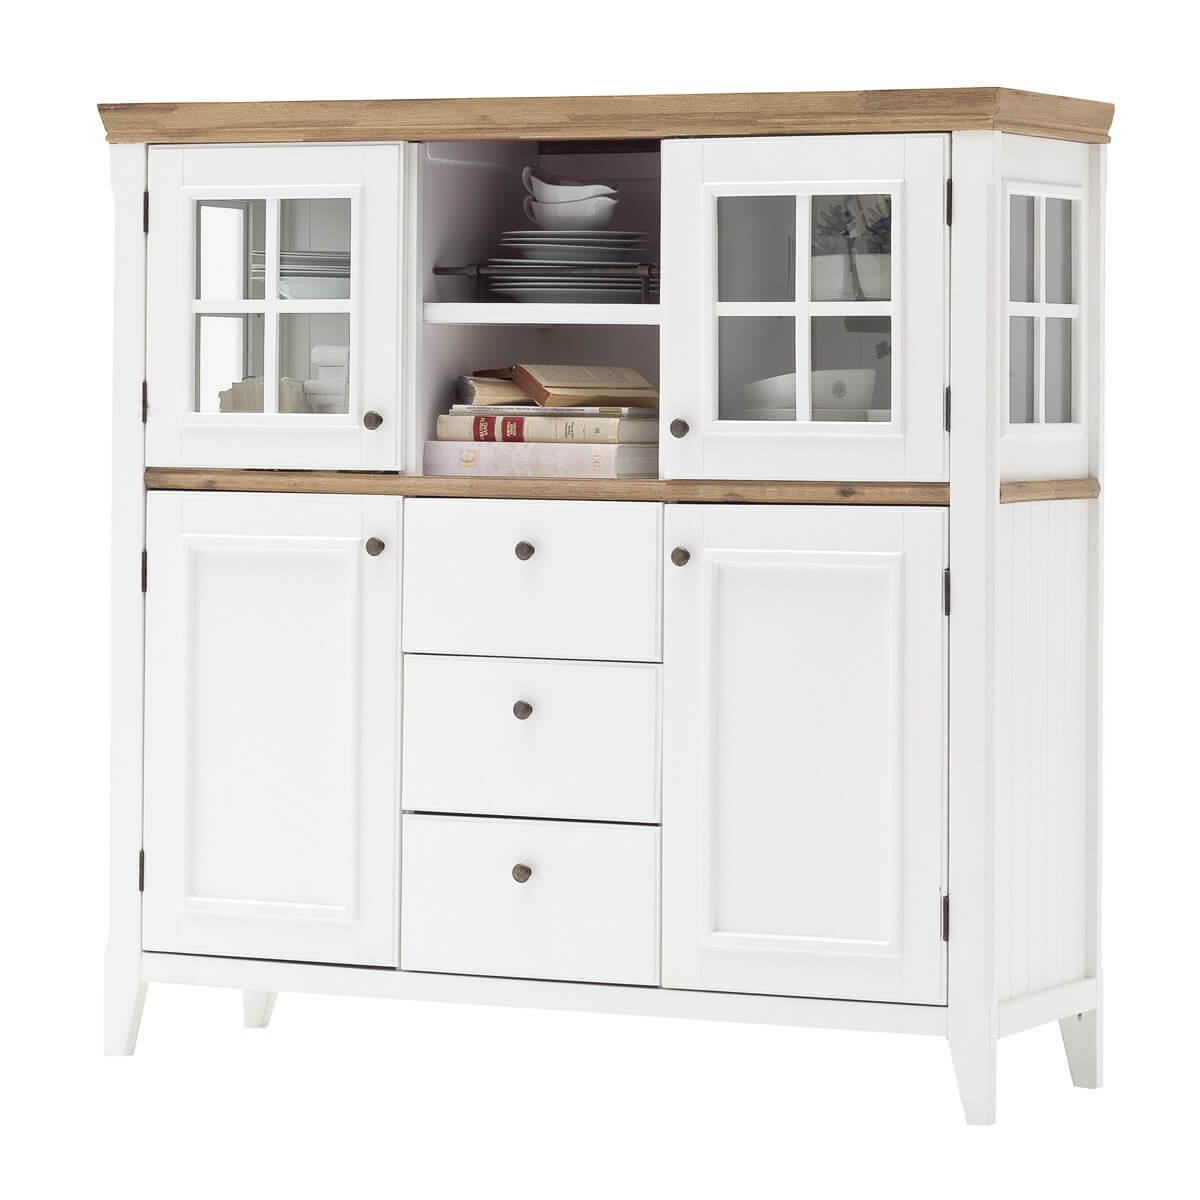 Highboard in wei naturfarbig 150cm breit m bel24 - Polsterecke landhausstil ...